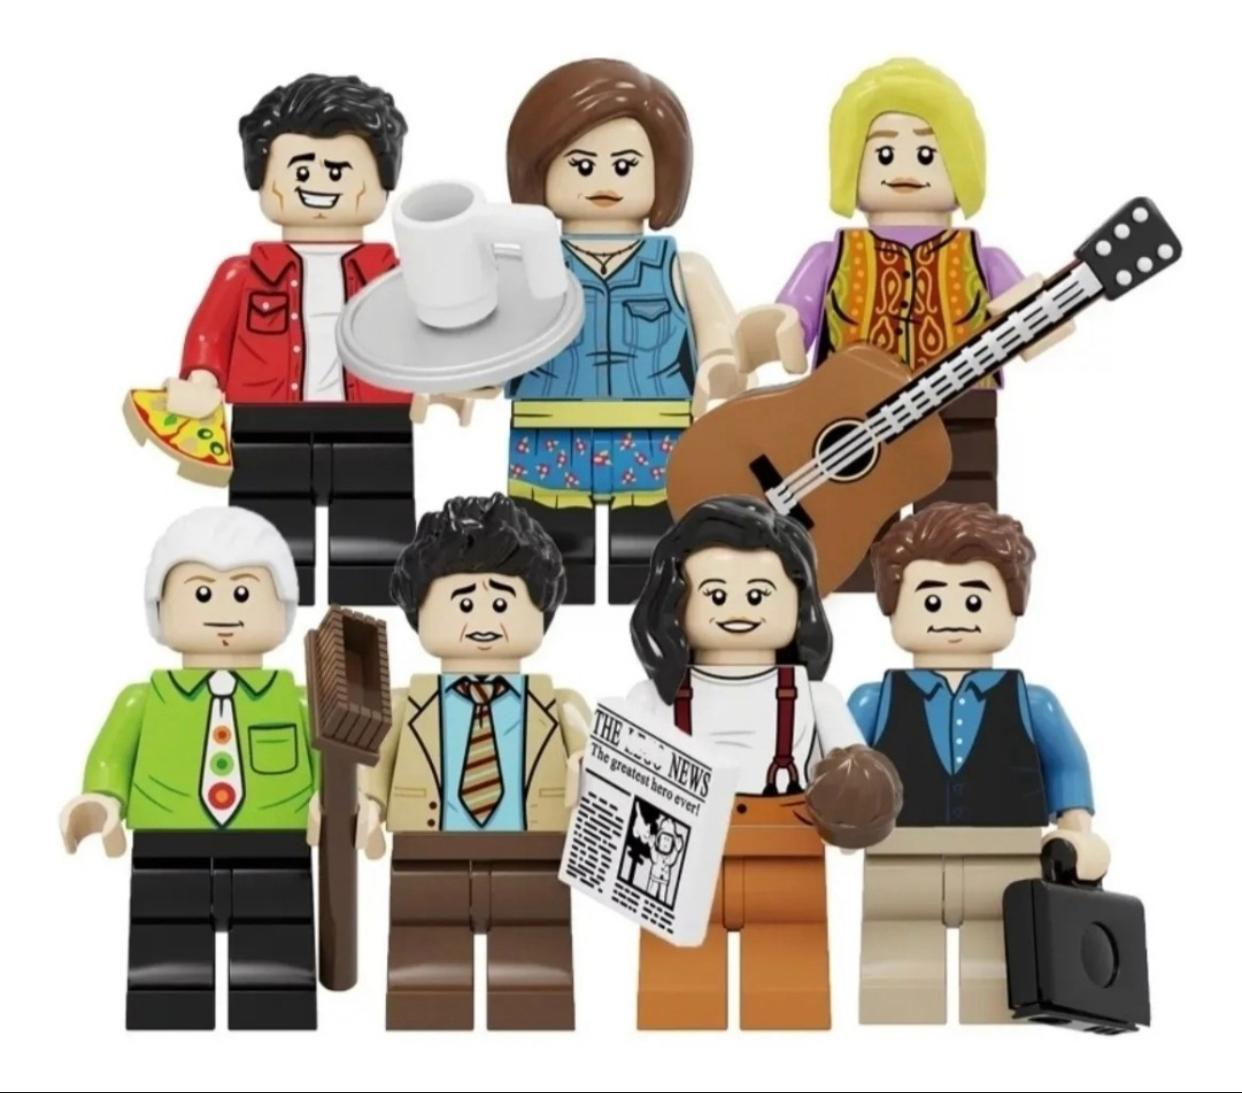 Friends Série Kit Com 7 Personagens: Lego Blocos De Montar - Friends